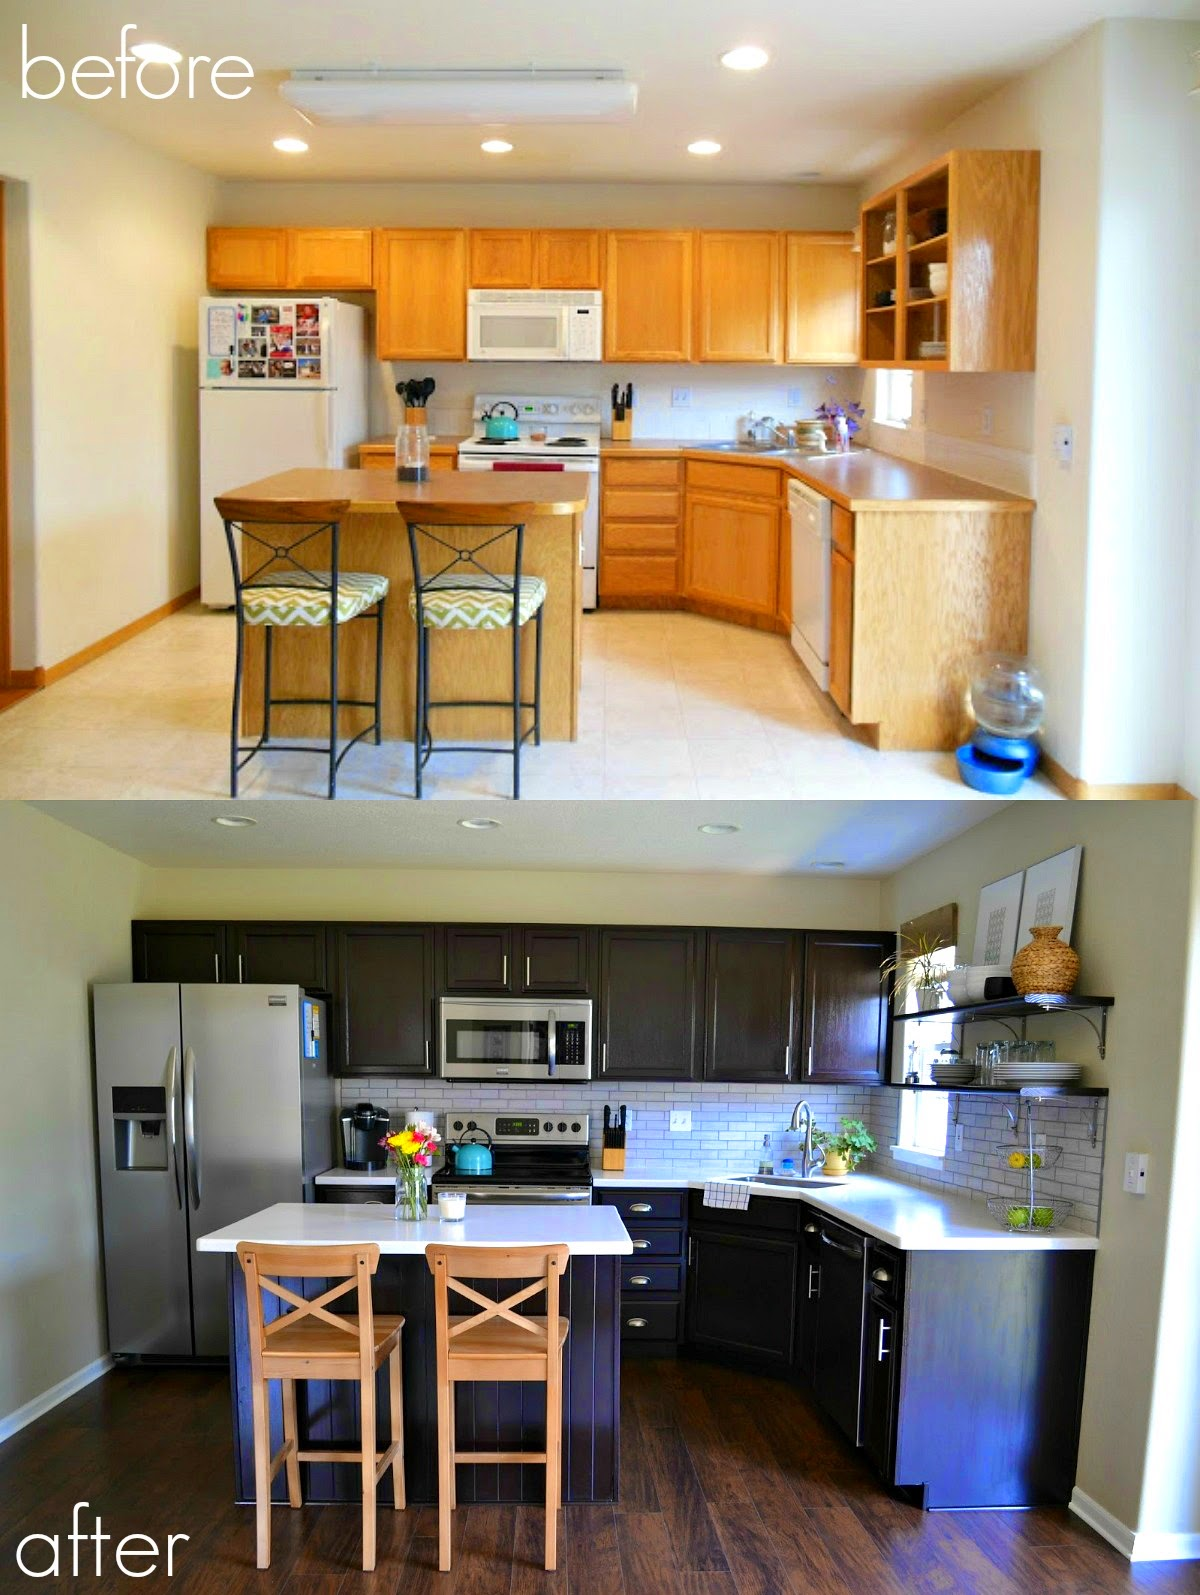 Refurbish Kitchen Cabinets Cabinet Refinishing 101 Latex Paint Vs Stain Vs Rust Oleum